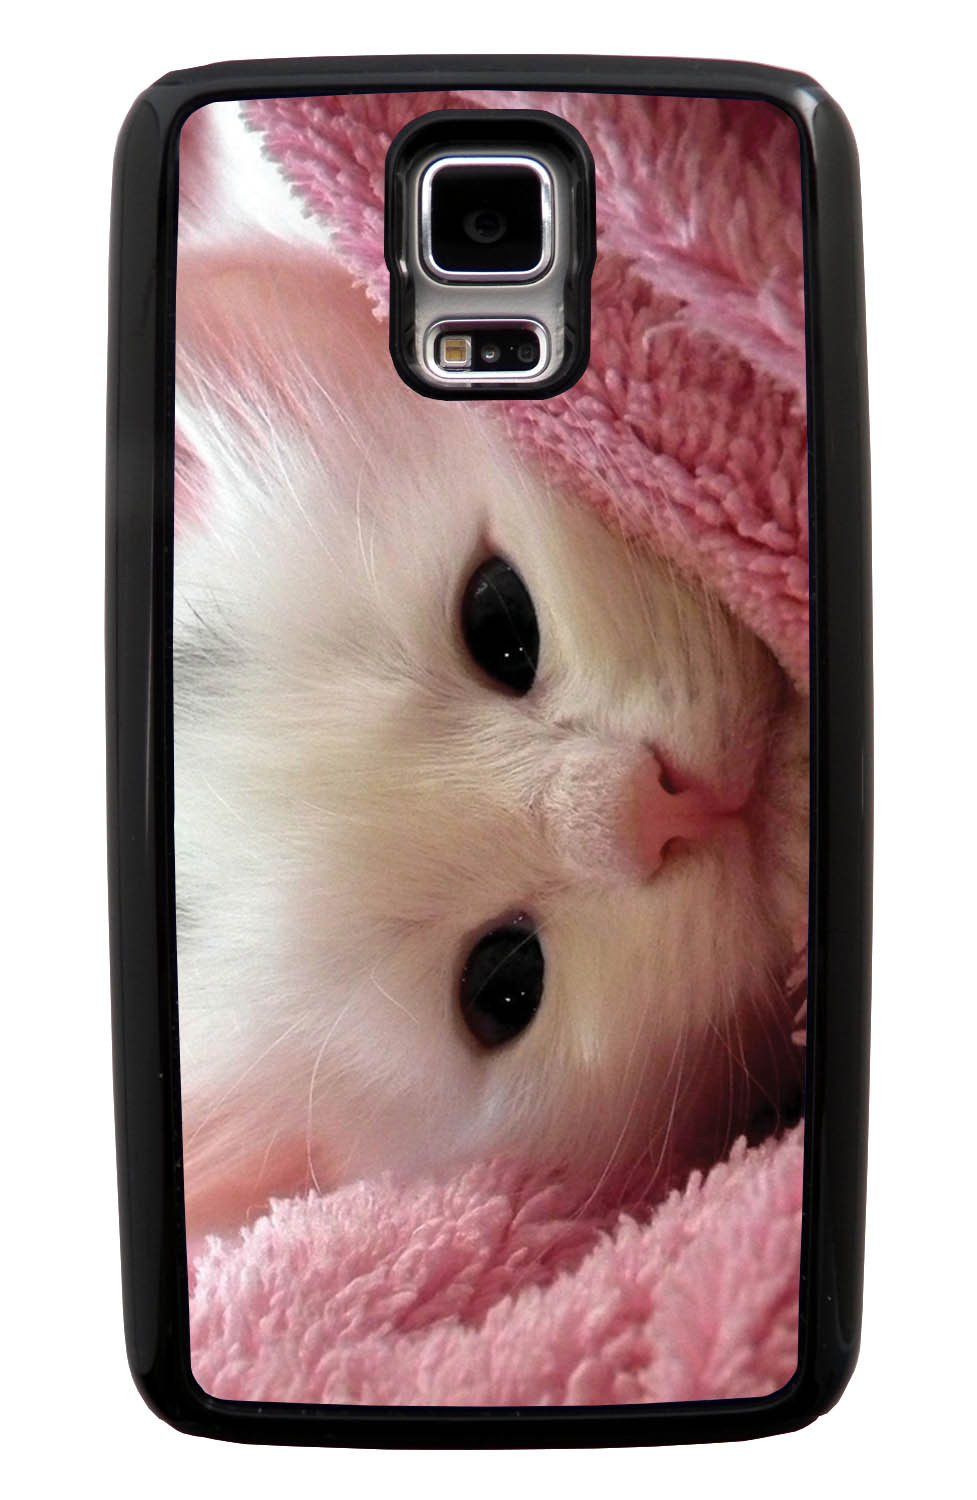 Samsung Galaxy S5 / SV Cat Case - New Born Kitten Photo - Cute Pictures - Black Tough Hybrid Case